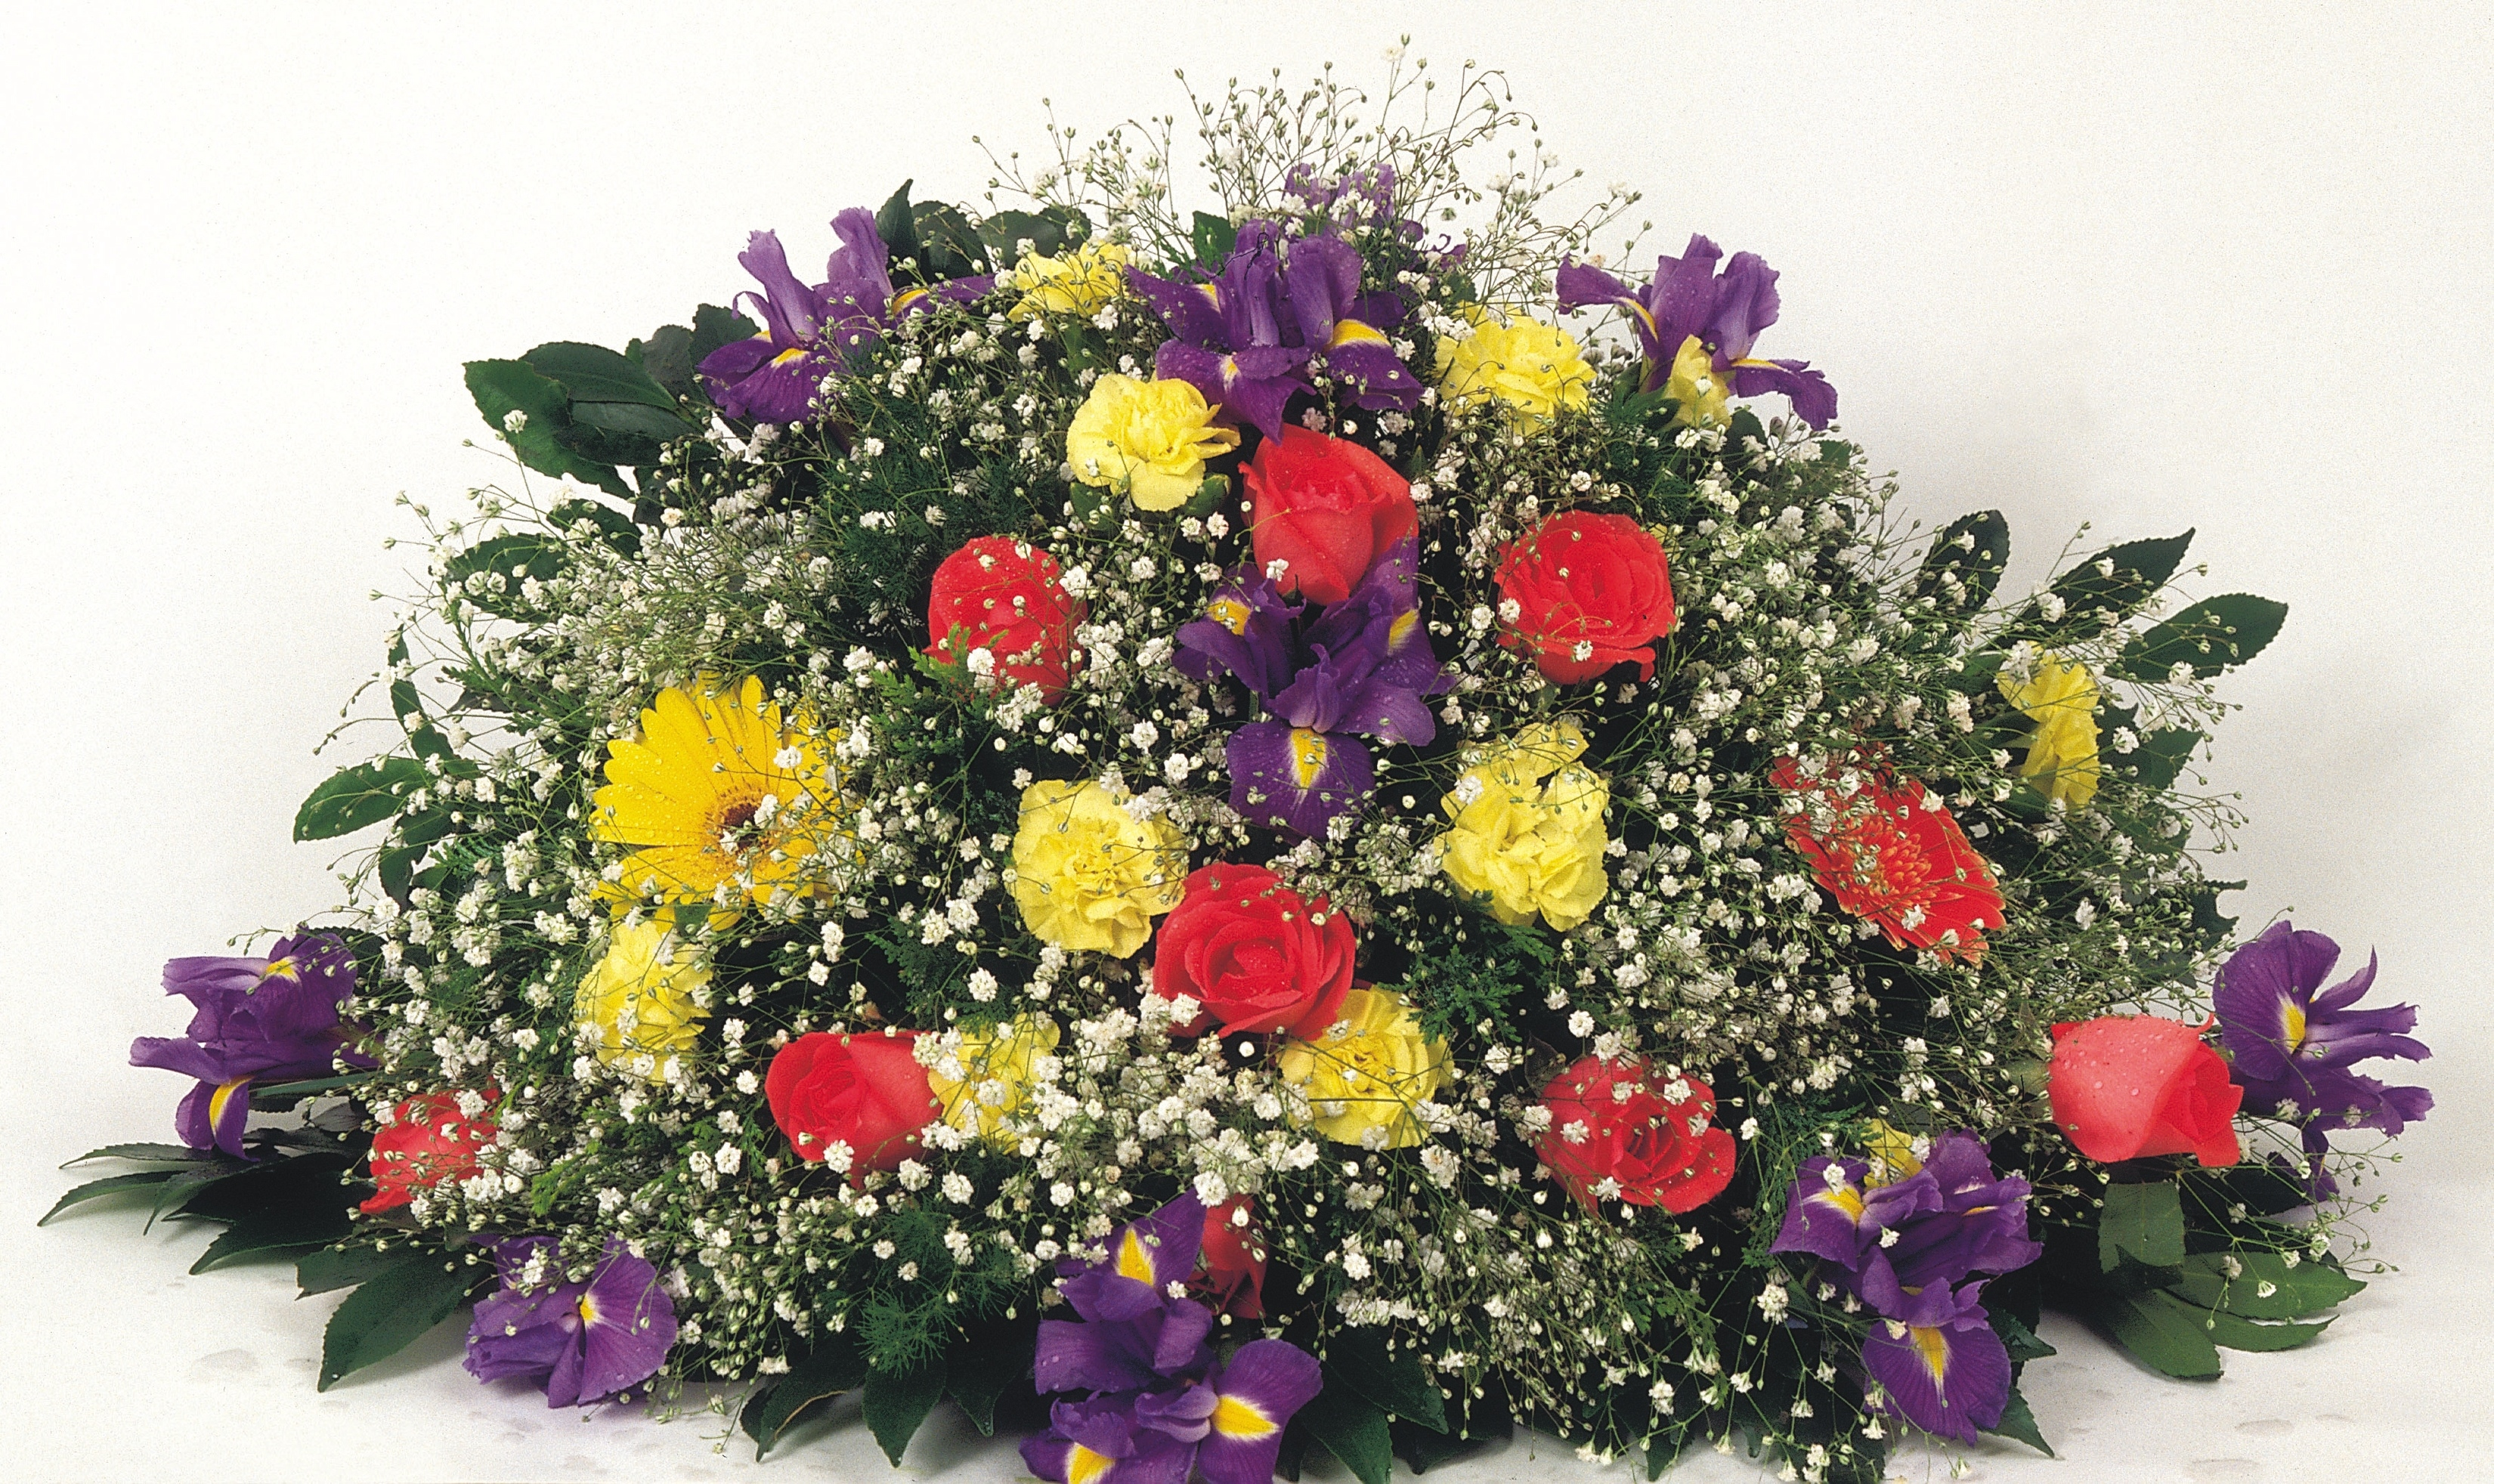 Lds Religion Flowers For Funerals Synonym